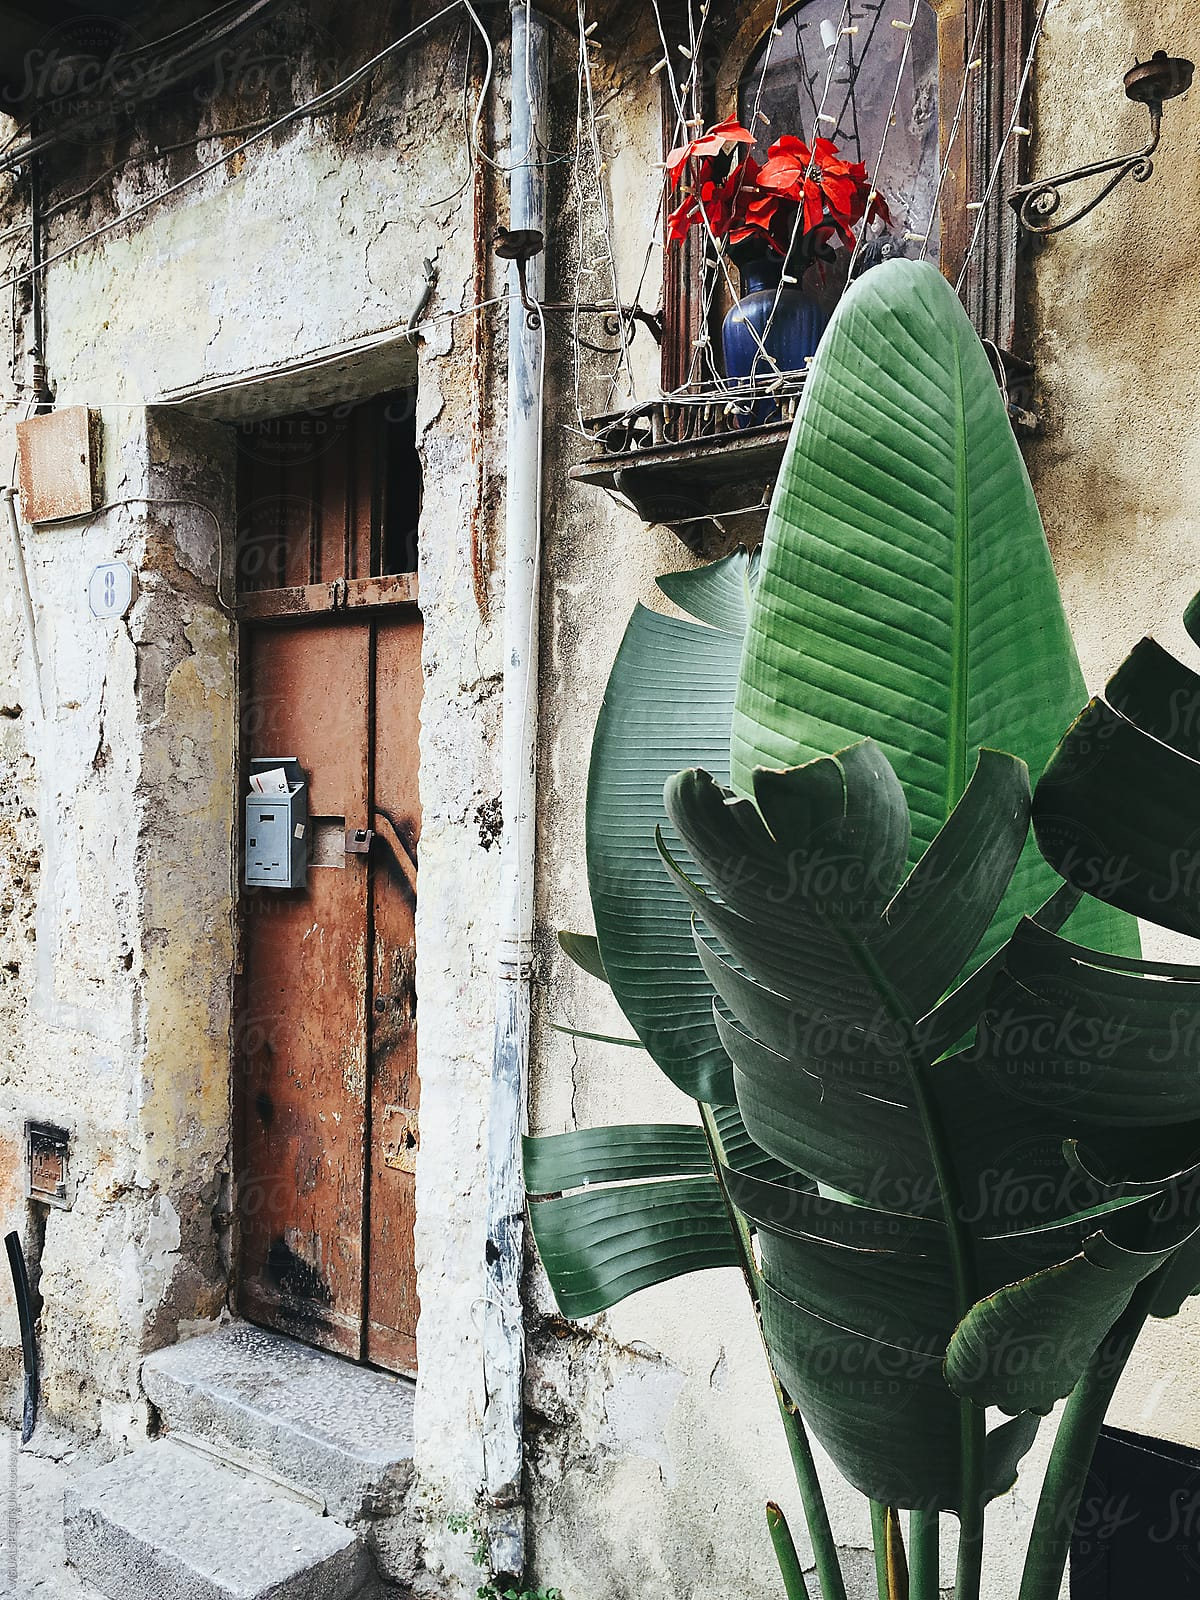 Plant In Front Of Old House In Palermo Sicily | Stocksy United